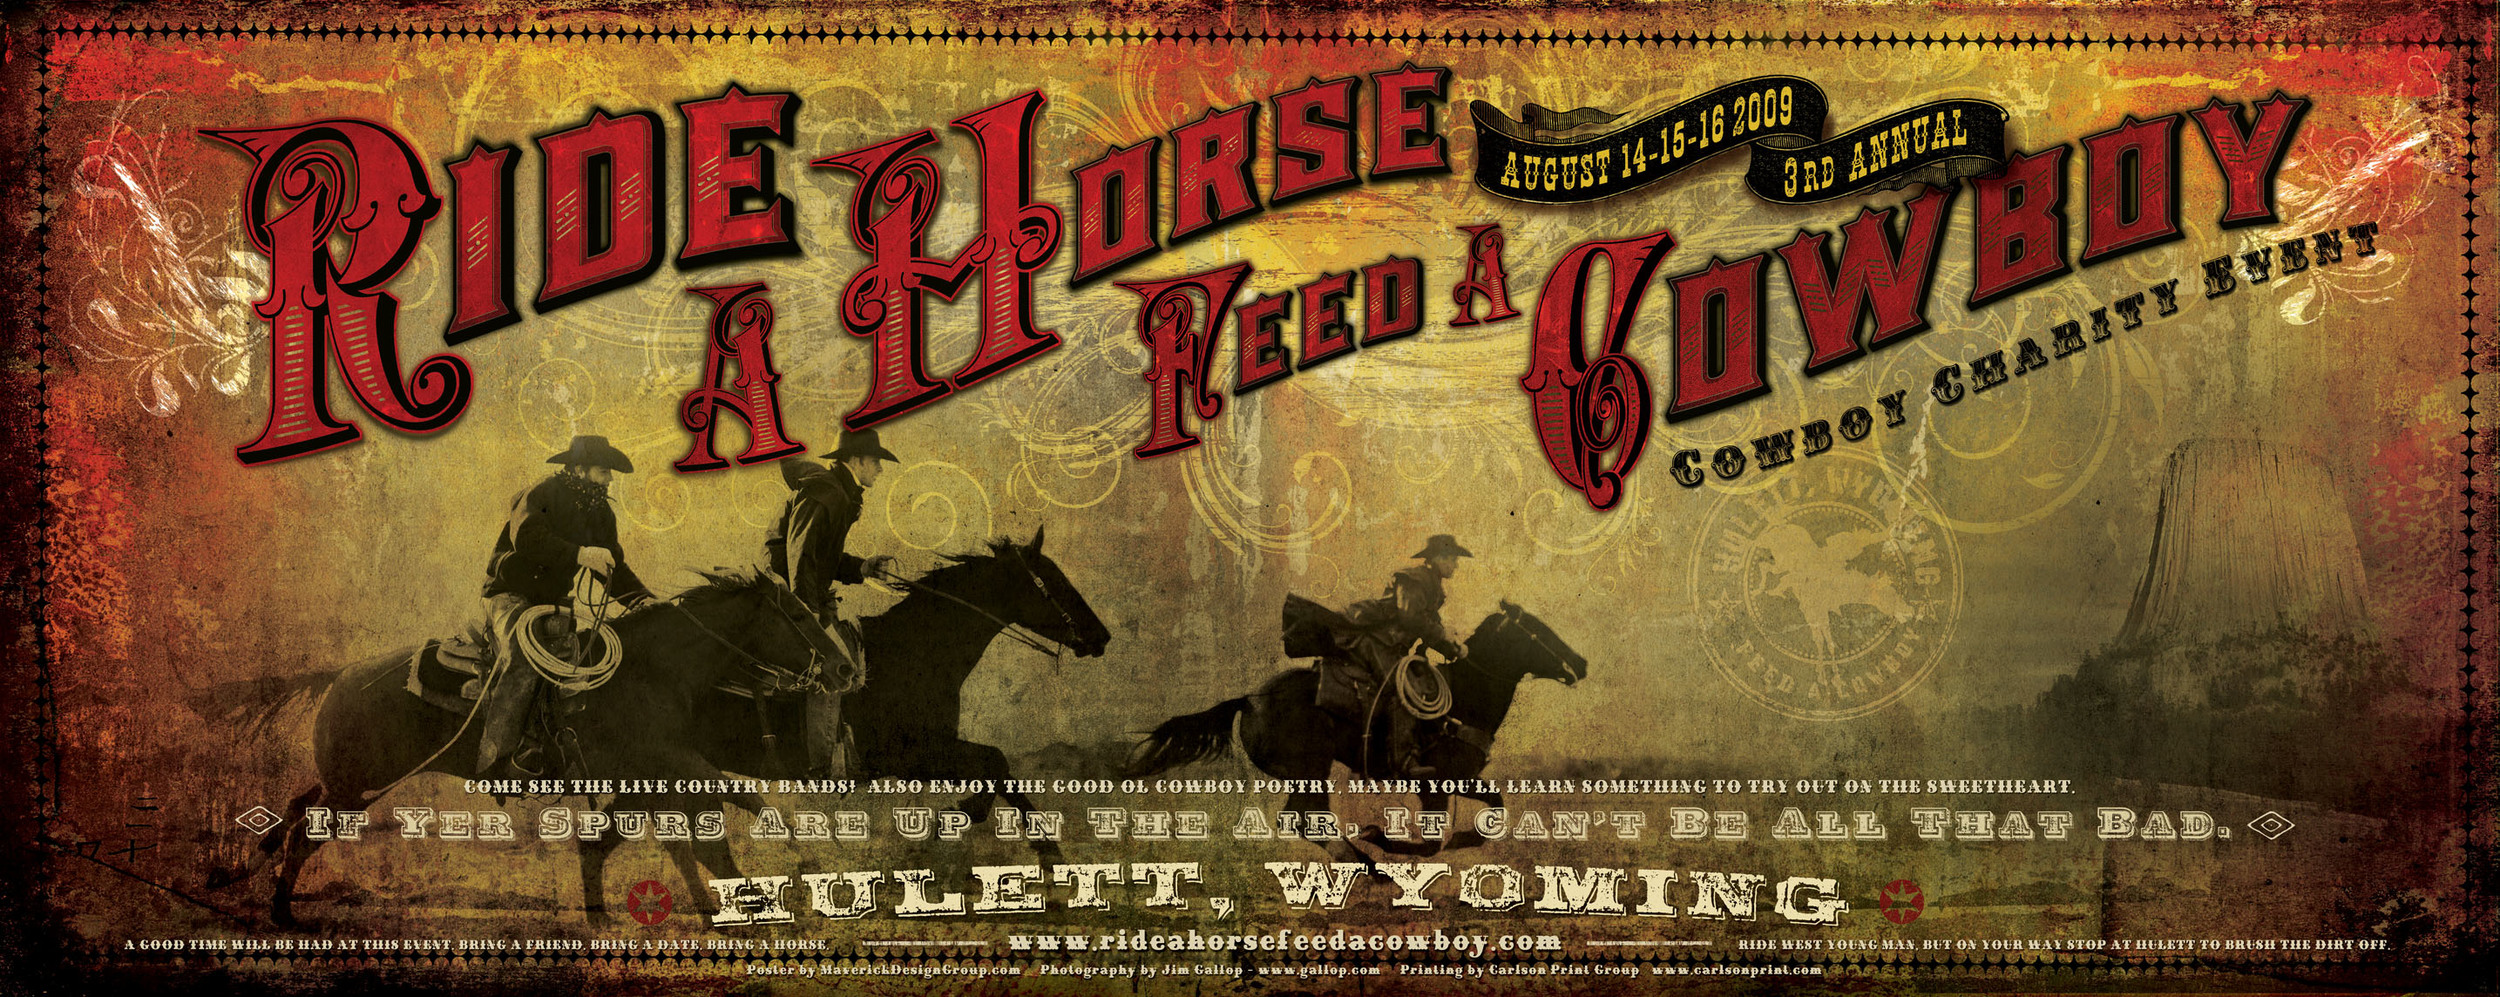 FLAT2009 Ride A Horse Feed A Cowboy Poster.jpg